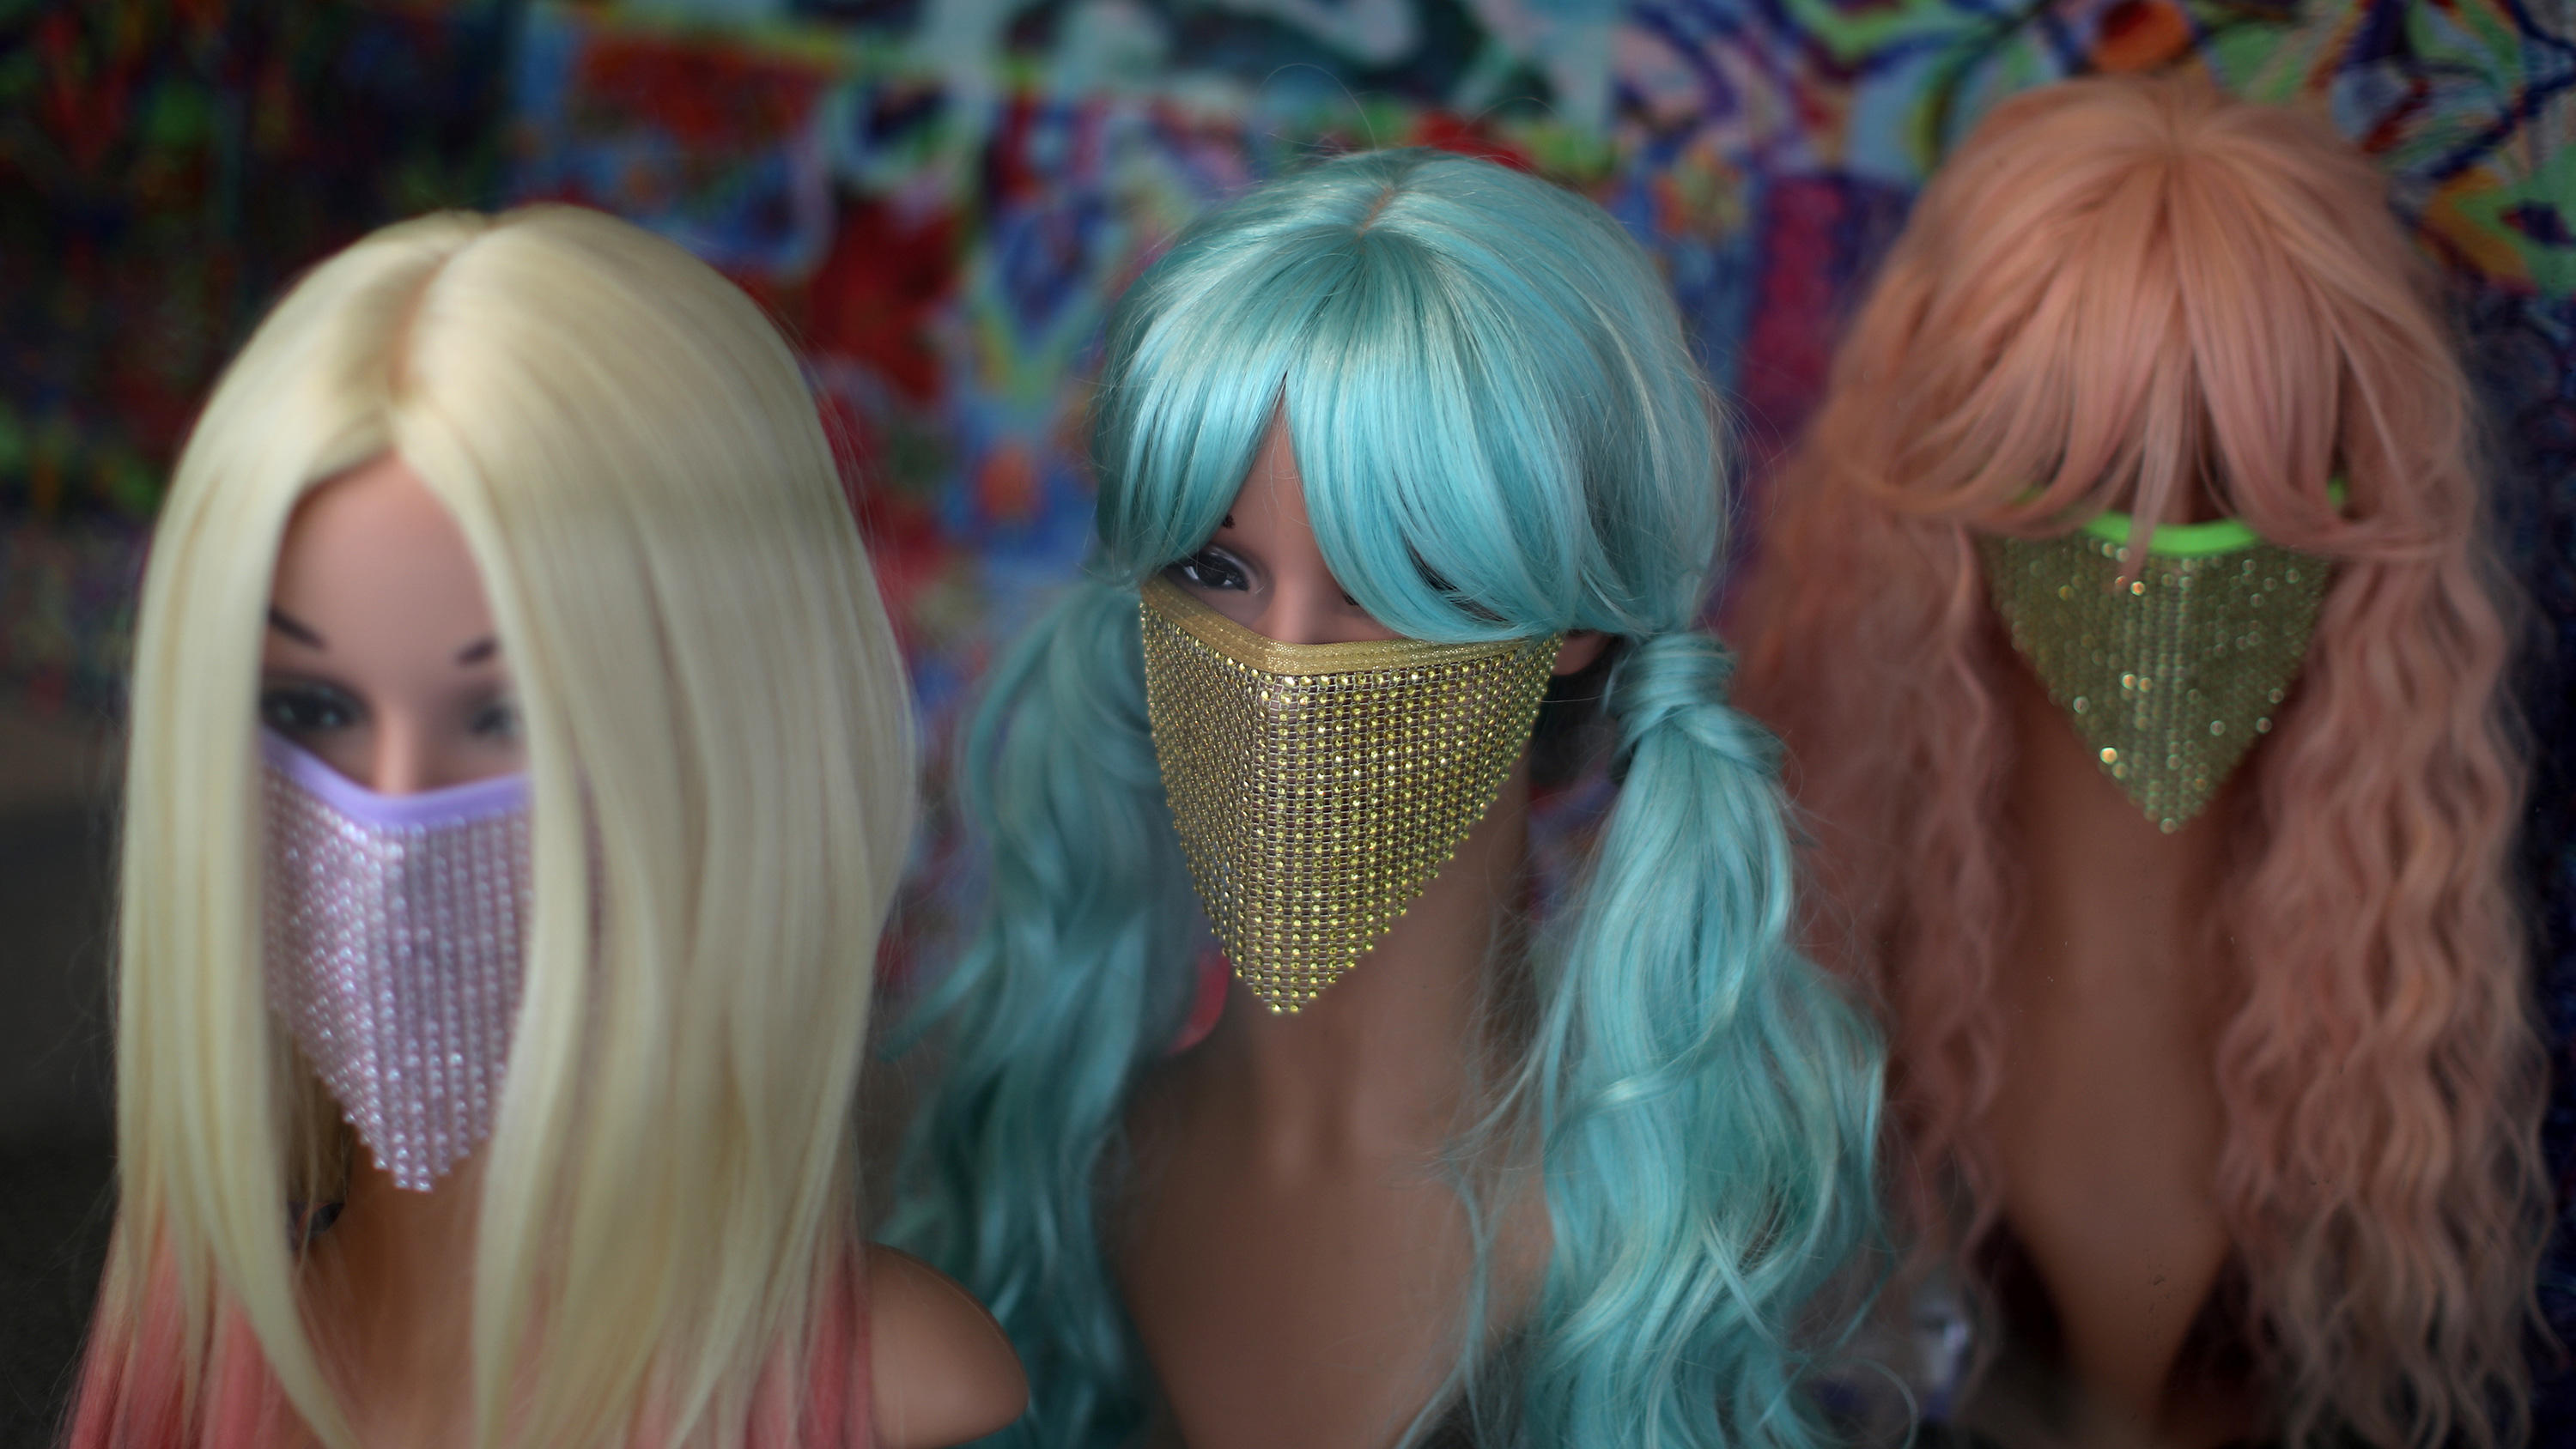 The photo shows three mannequin heads, each with a colorful wig as well as a colorful, sequined mask.